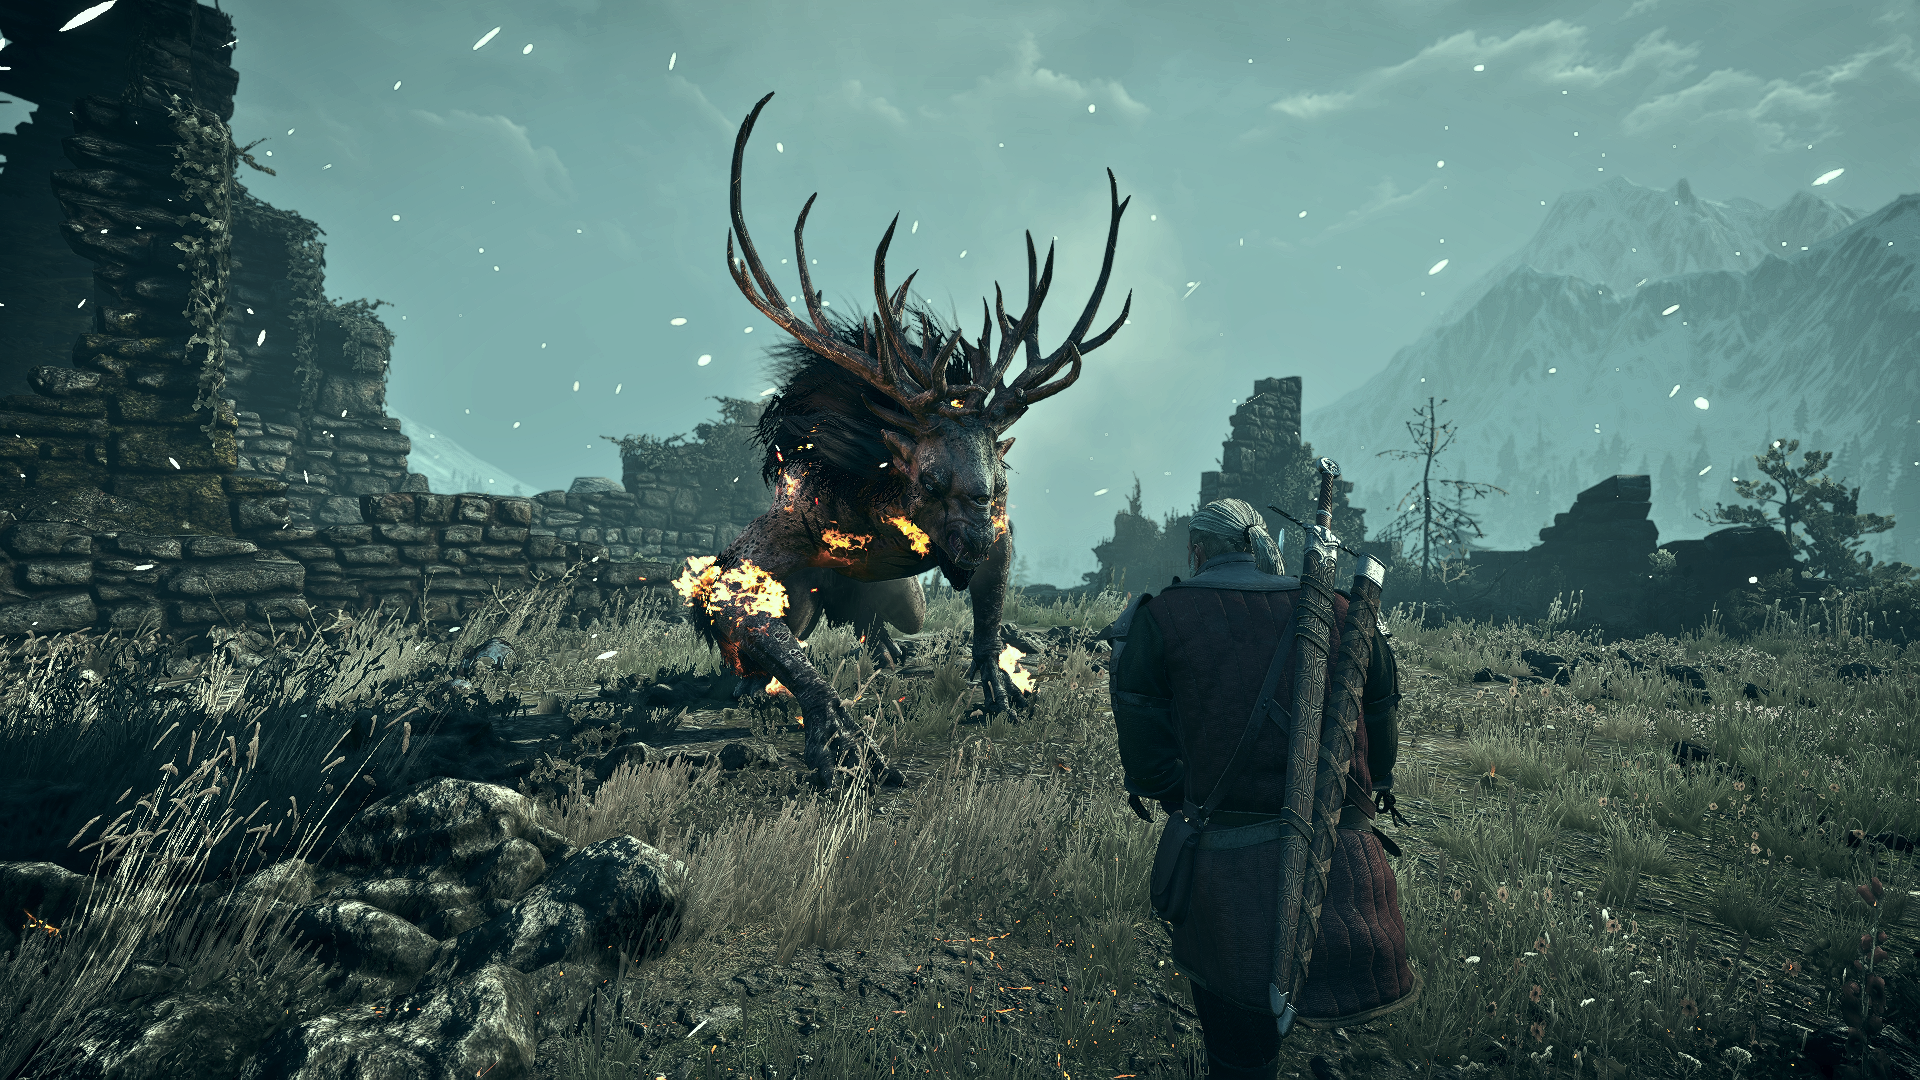 Skellige at The Witcher 3 Nexus - Mods and community